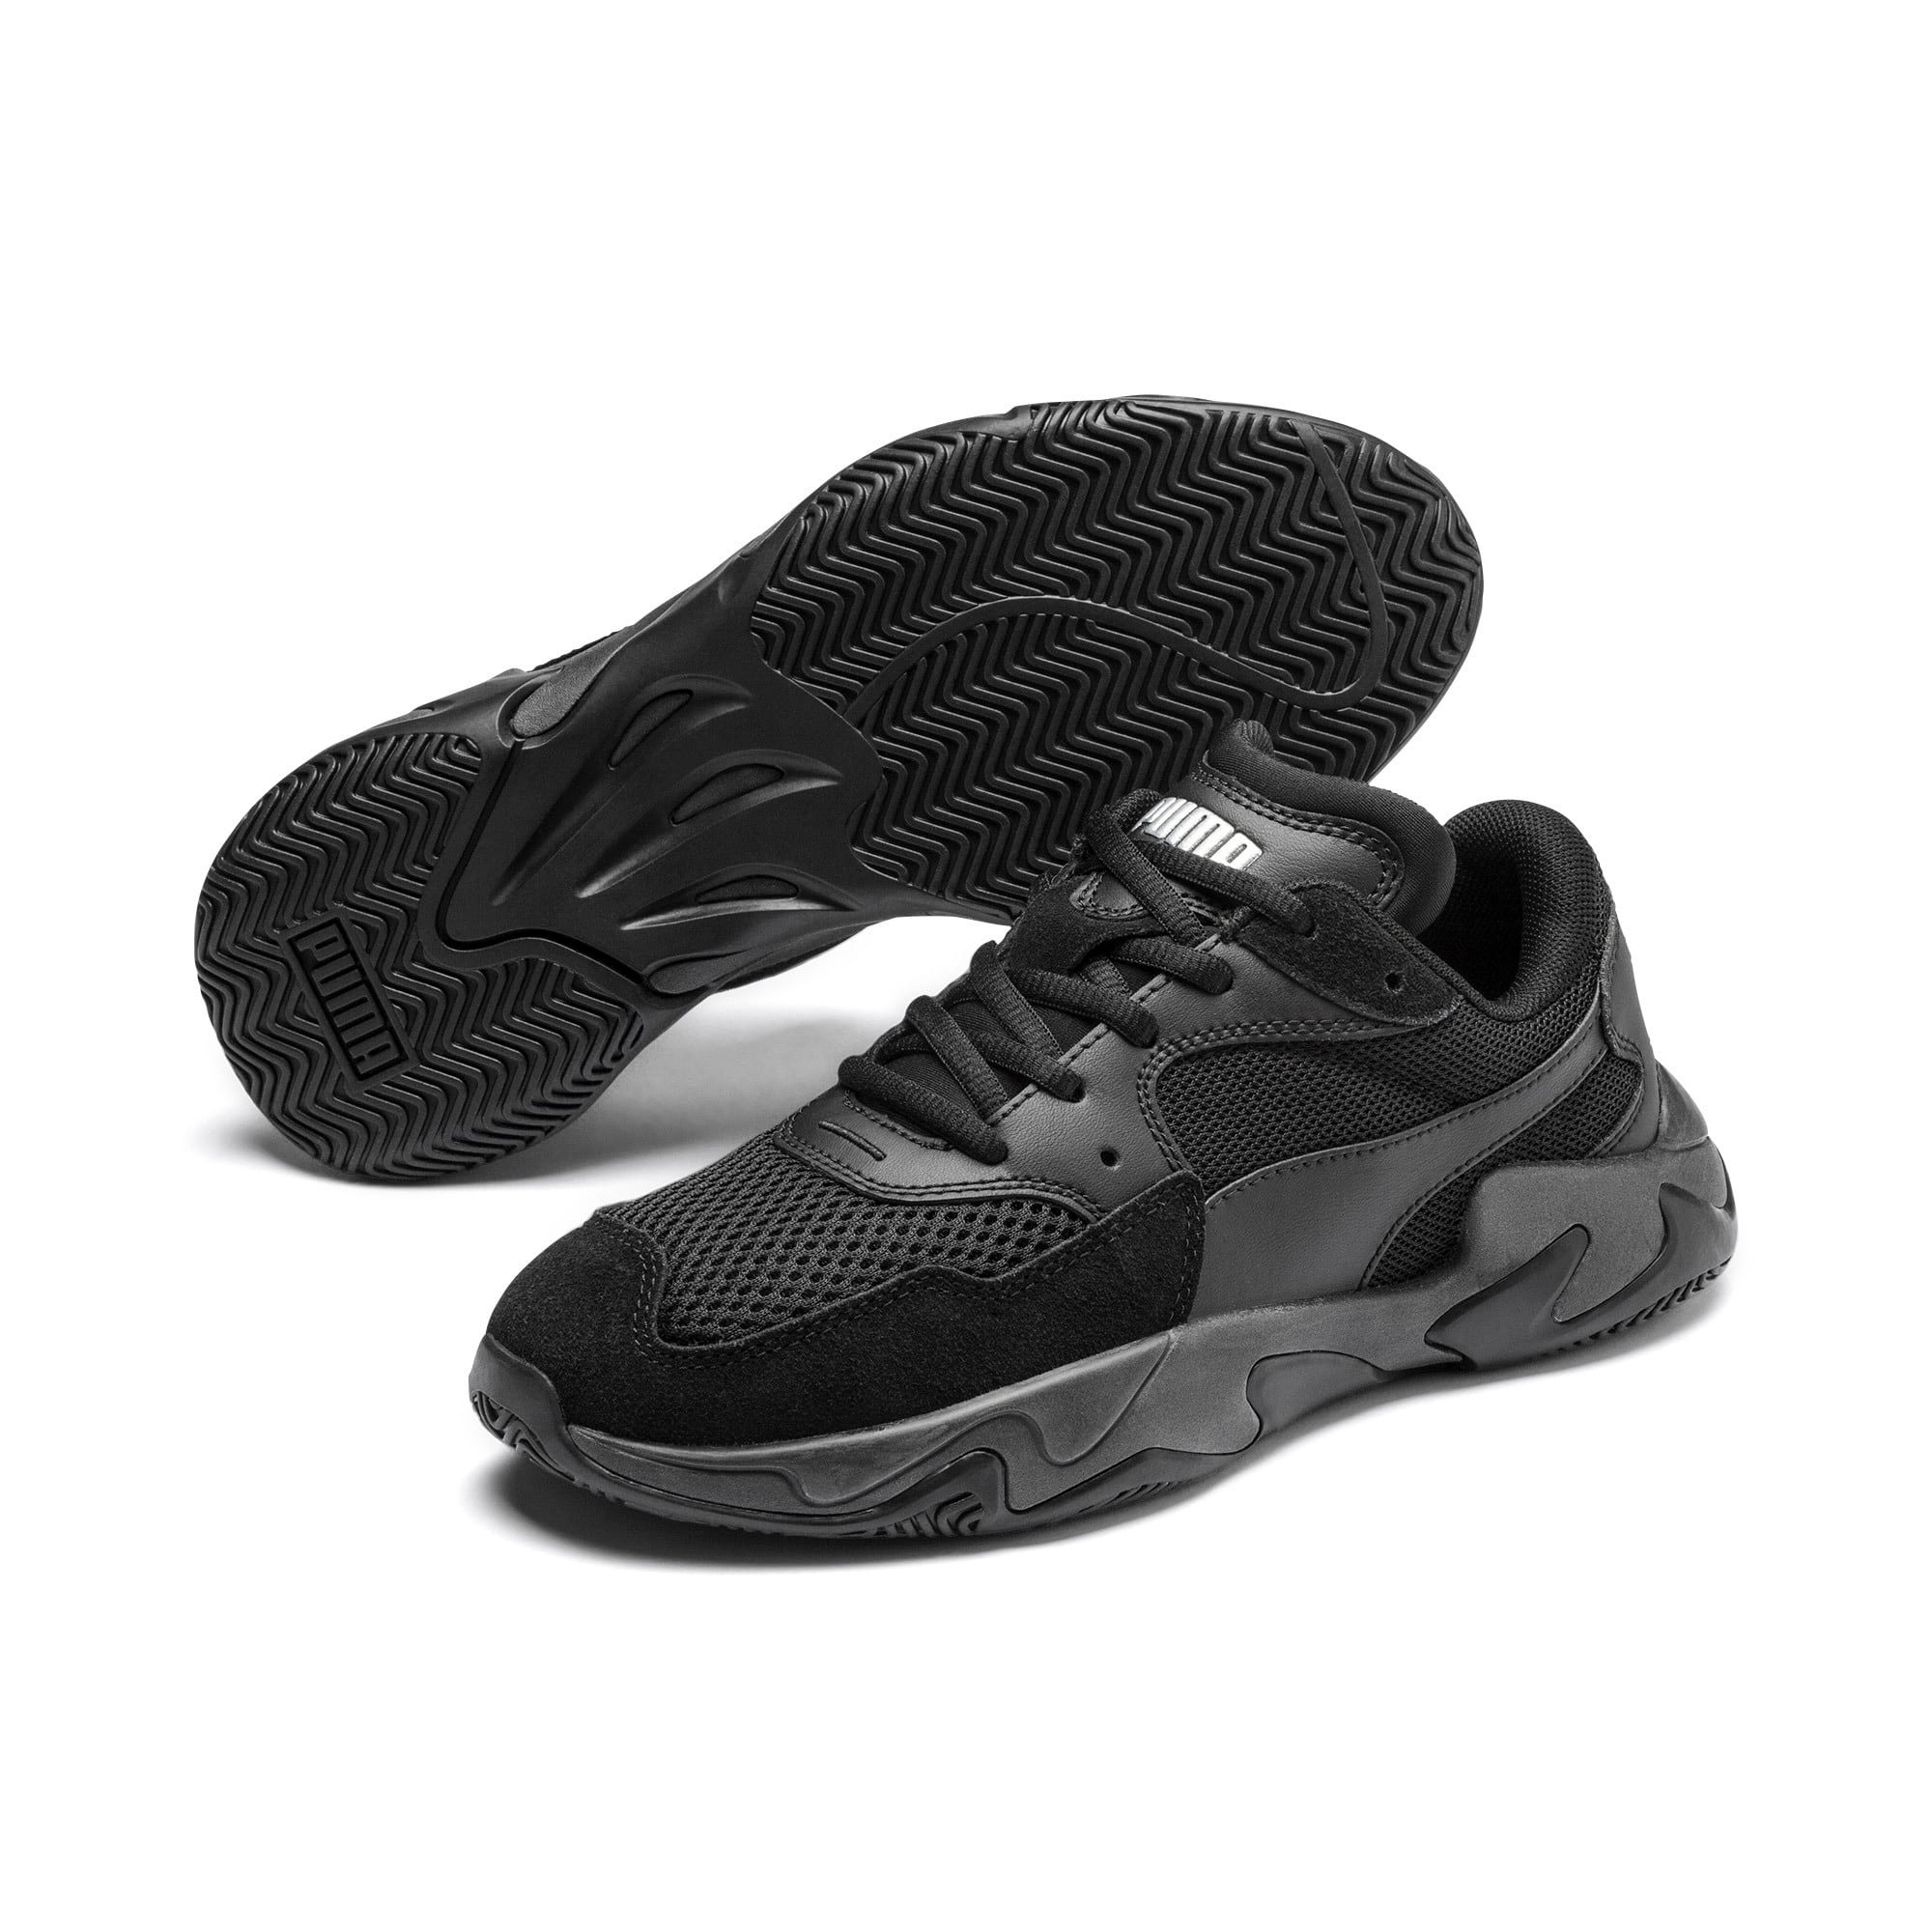 Storm Origin Youth Trainers, Puma Black, large